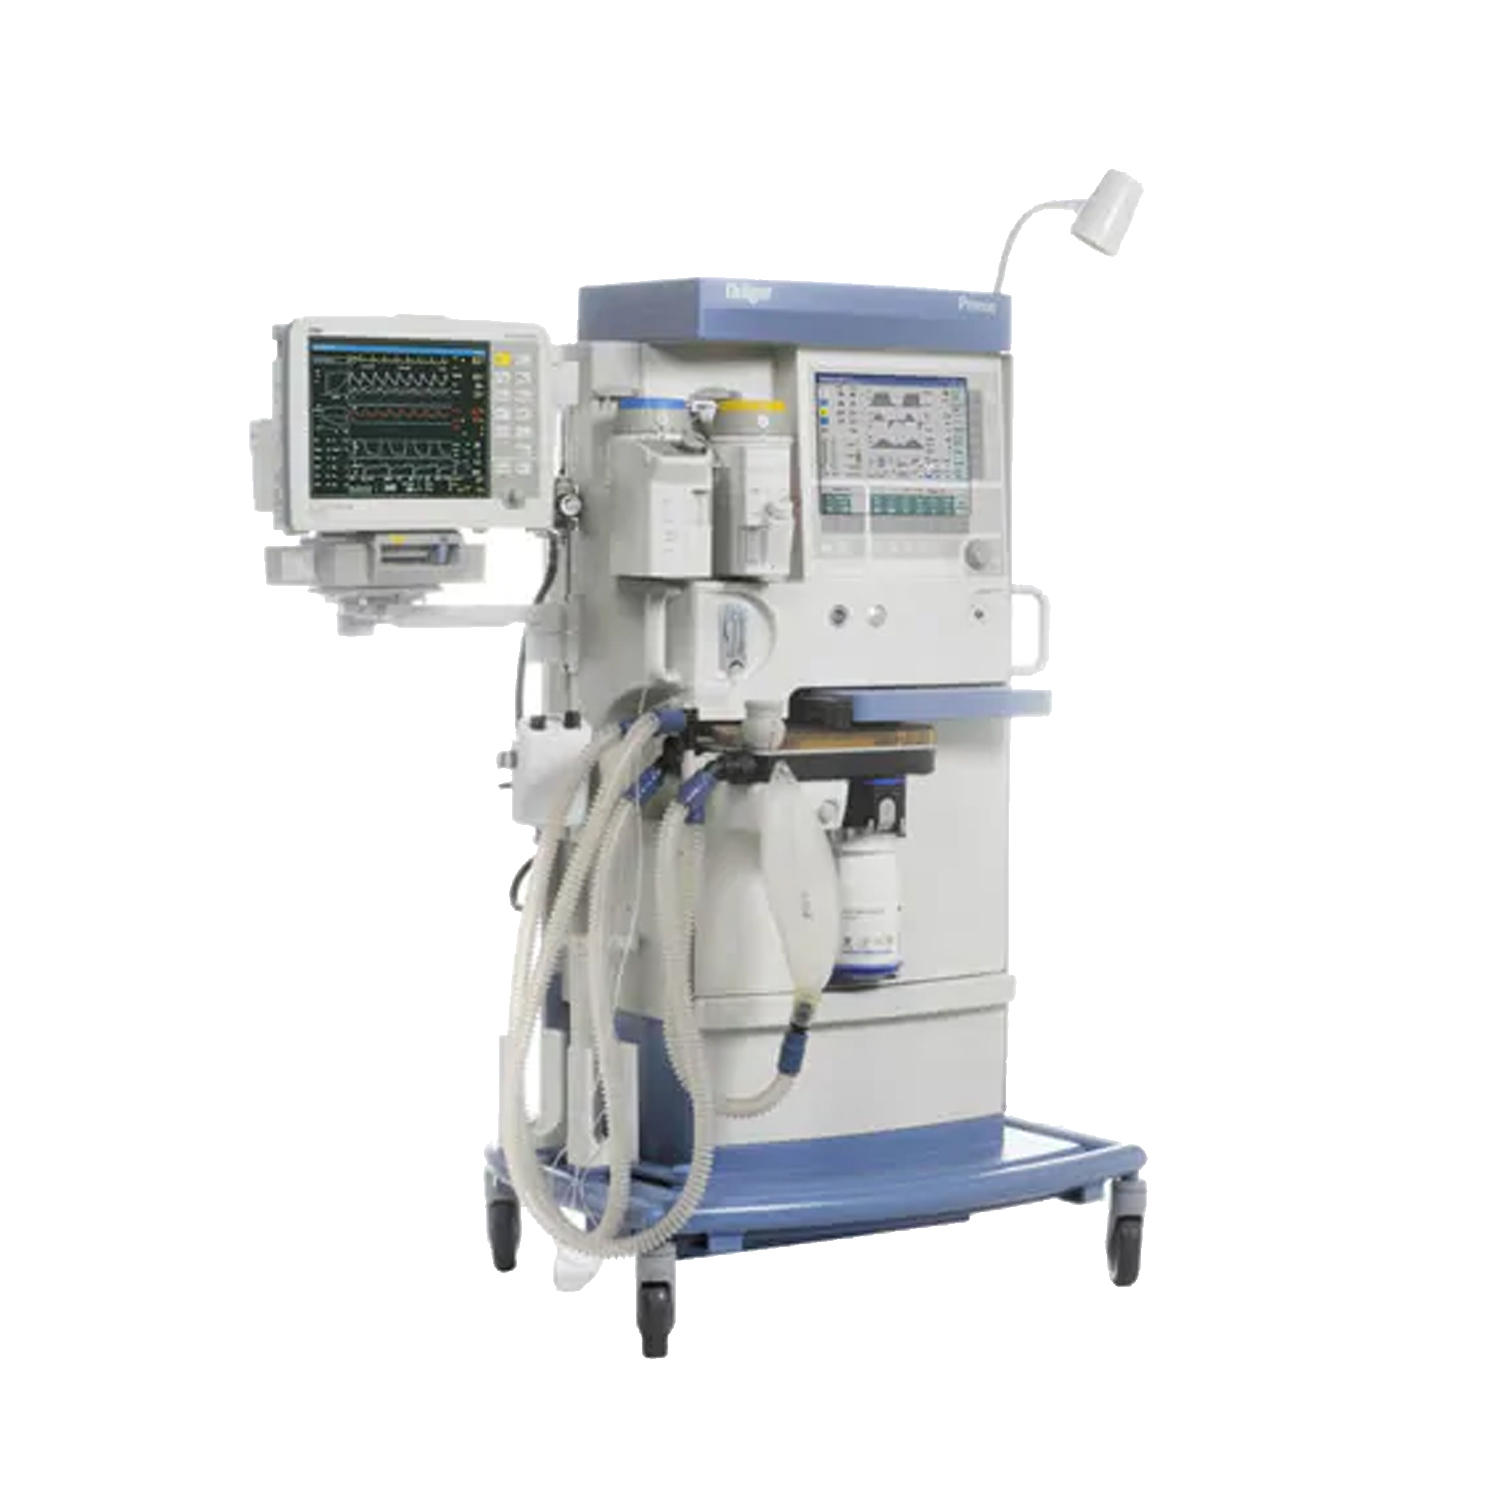 Drager Primus Anesthesia Workstation